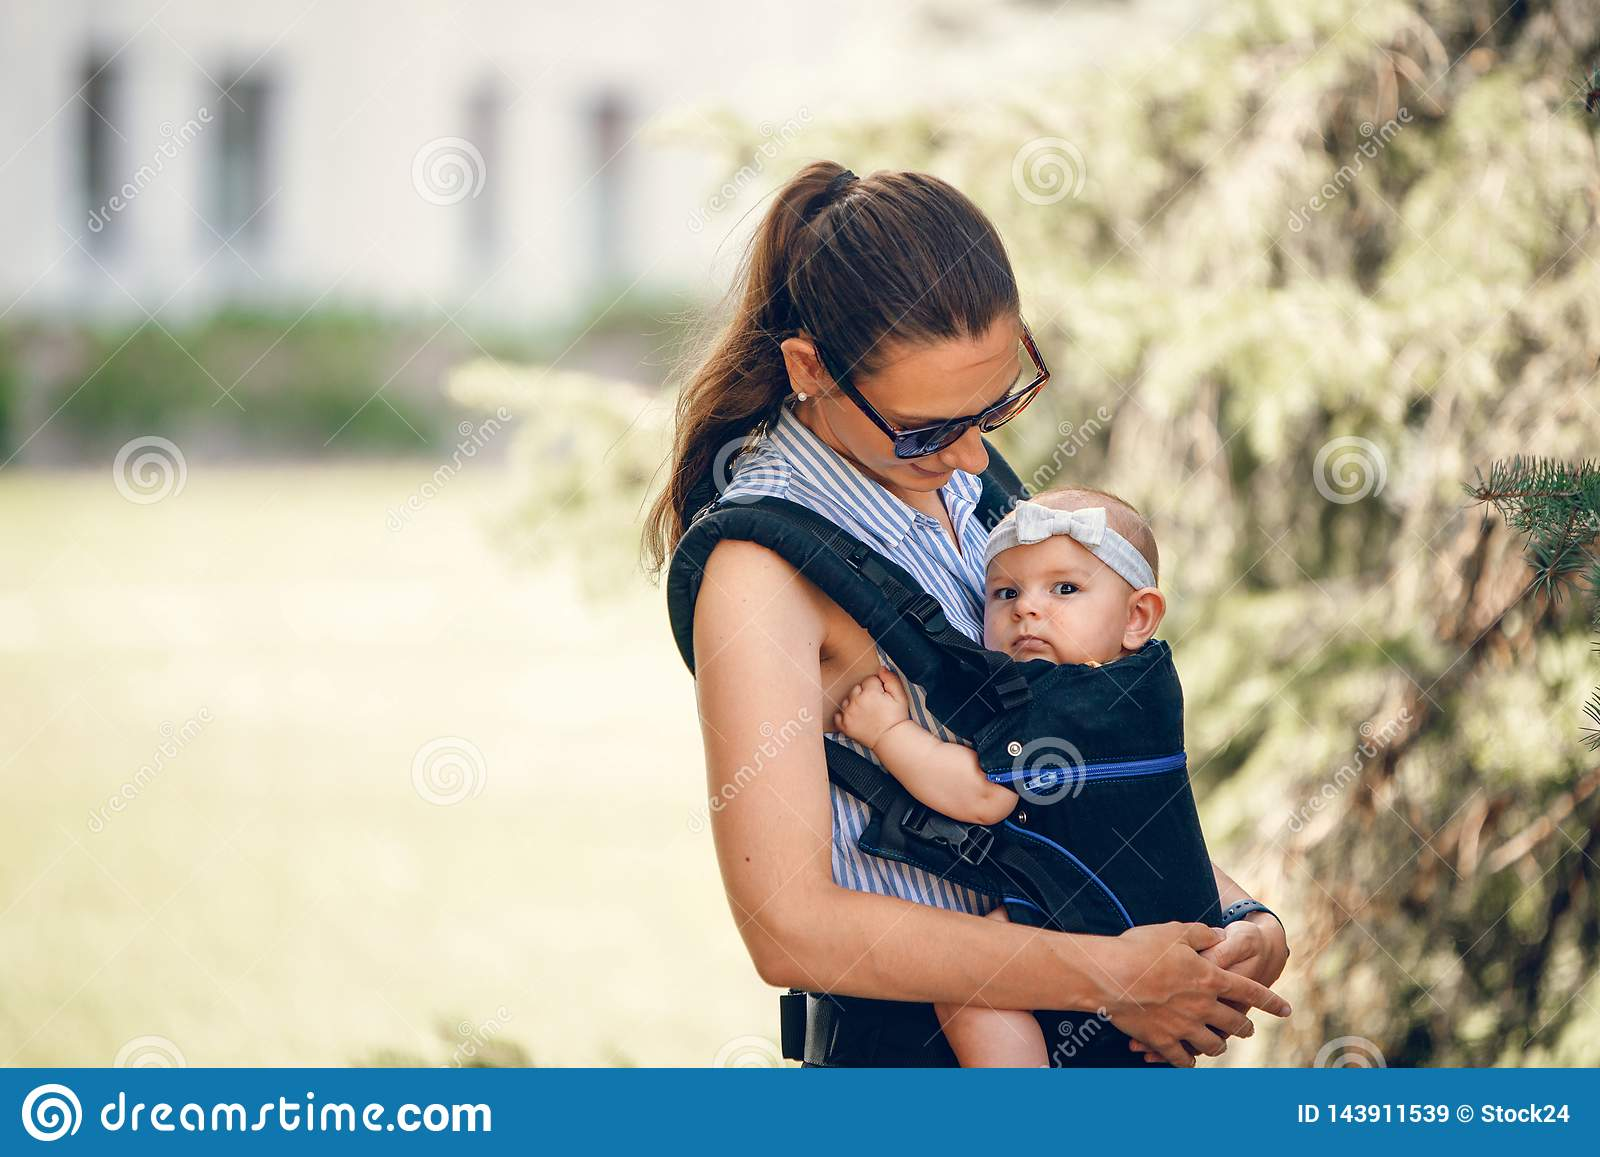 Little Baby Girl And Her Mother Walking Outside Babywearing In The